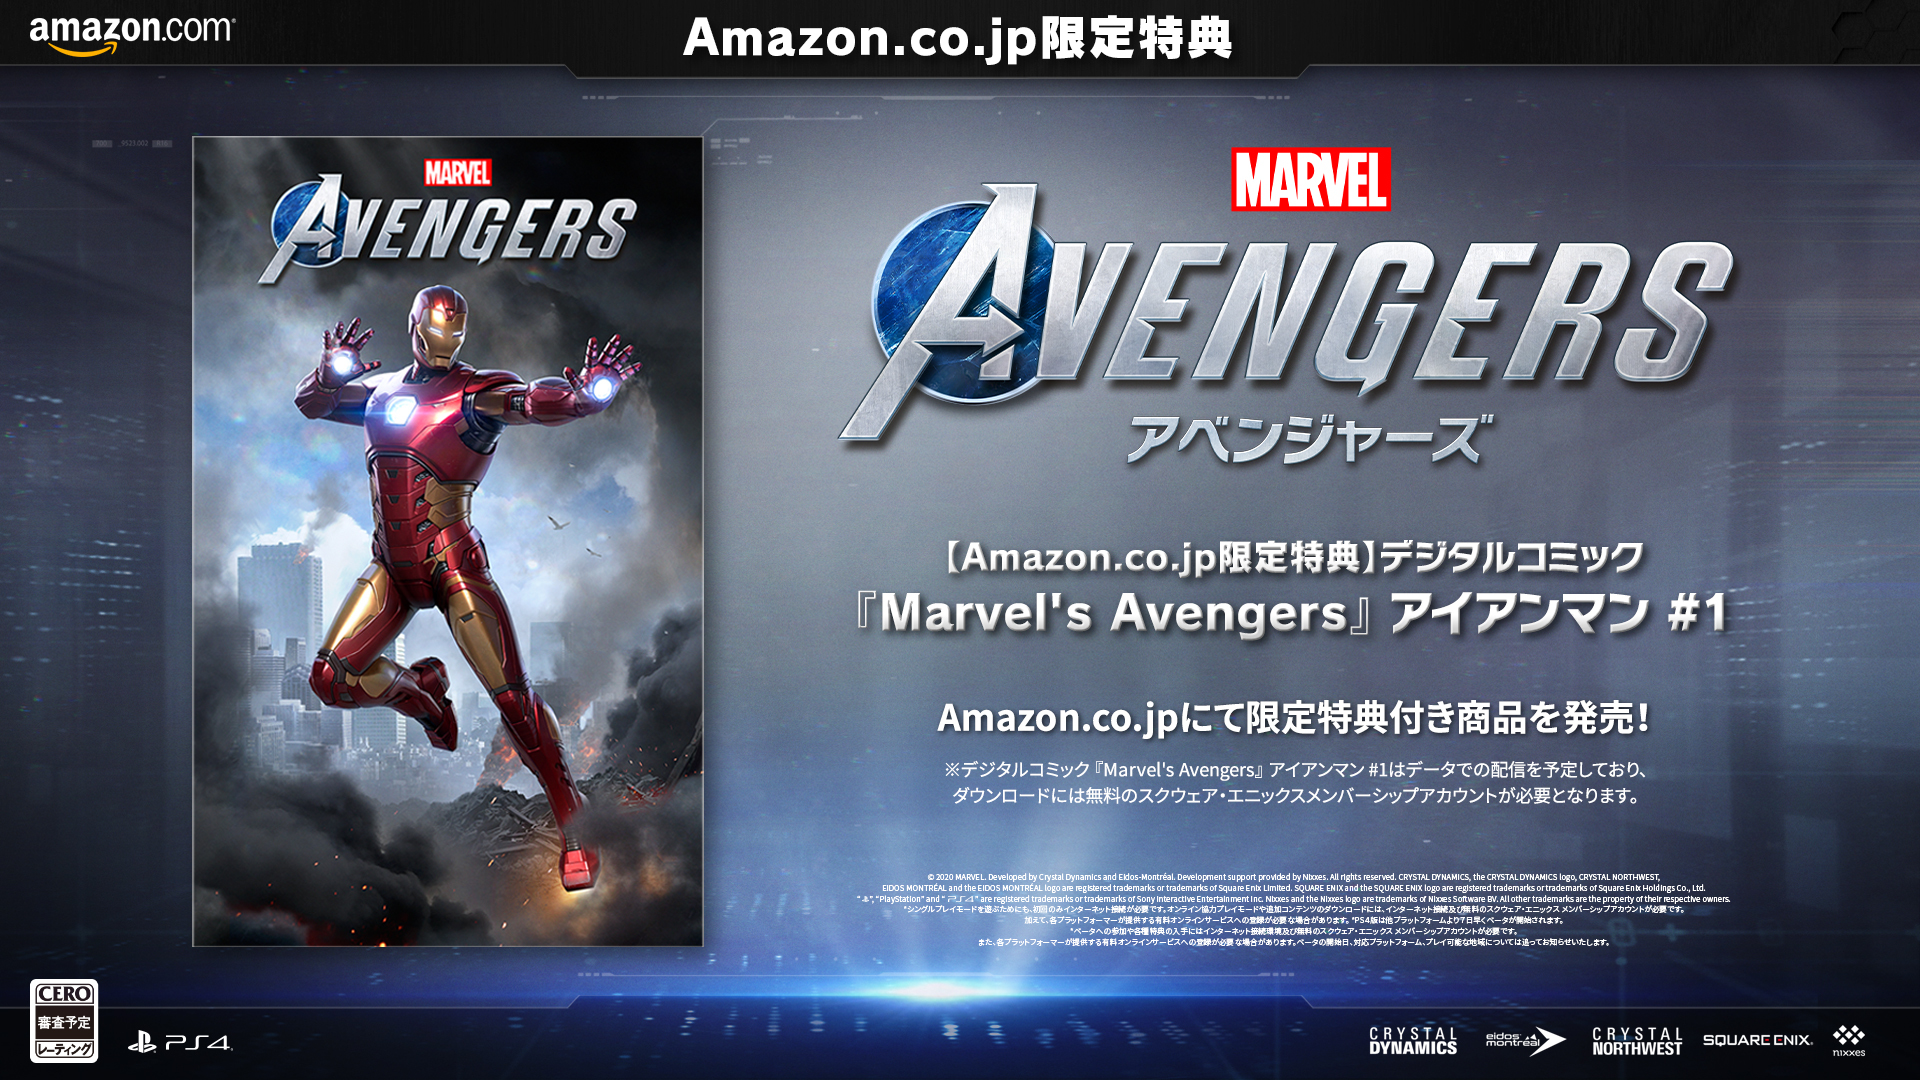 Amazon限定デジタルコミック C)2020 MARVEL. Developed by Crystal Dynamics and Eidos Montréal. Development support provided by Nixxes. All rights reserved.